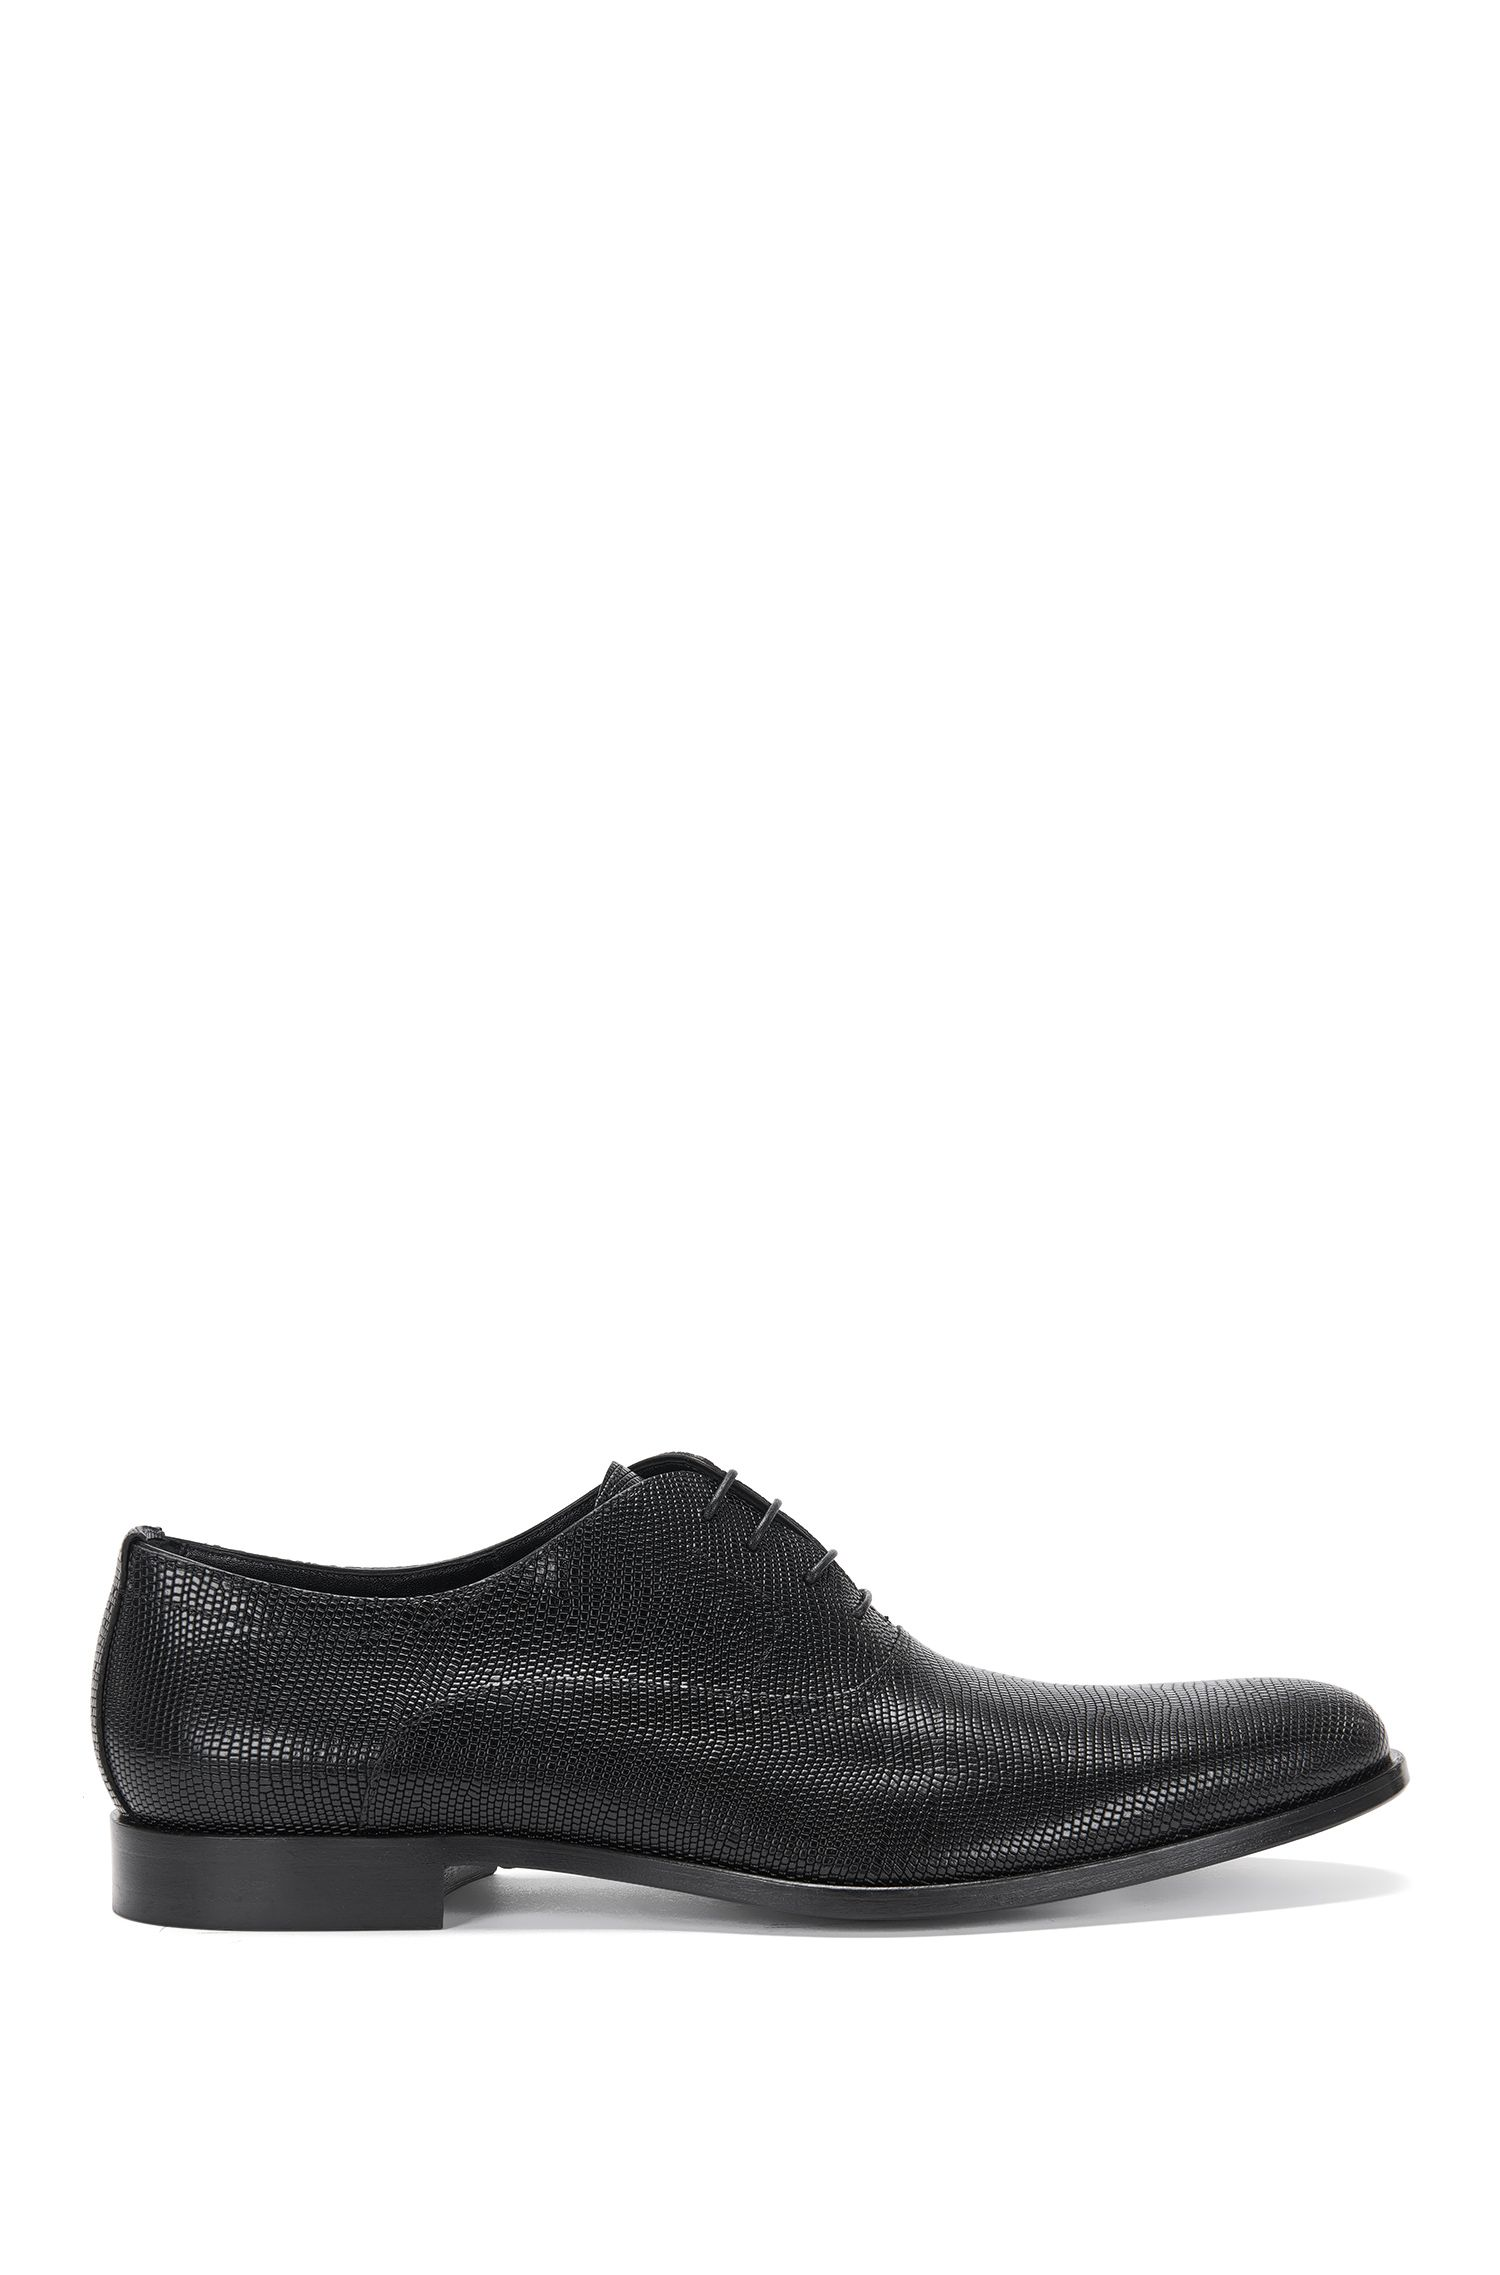 Italian Leather Embossed Oxford Dress Shoe | Sigma Oxfr Exo